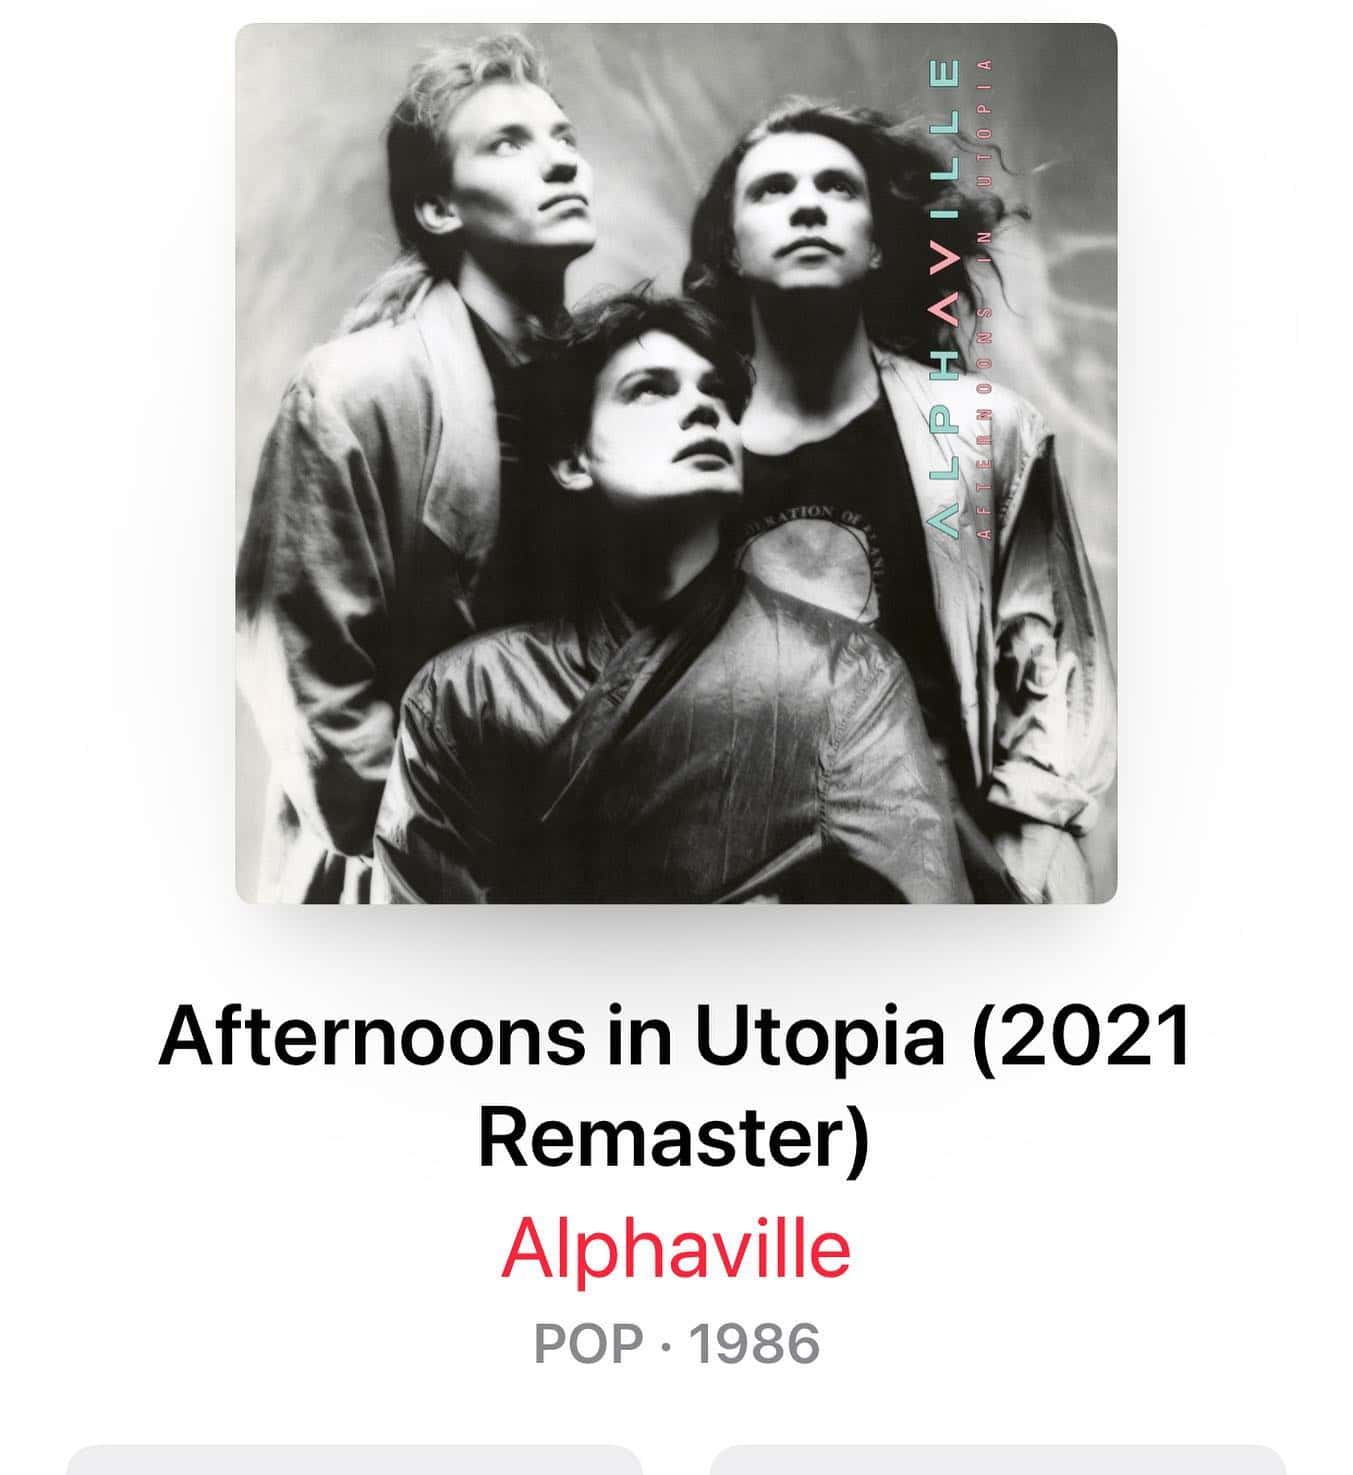 Old songs, new sound! I love it! Great job @alphaville.music @mariangold_official